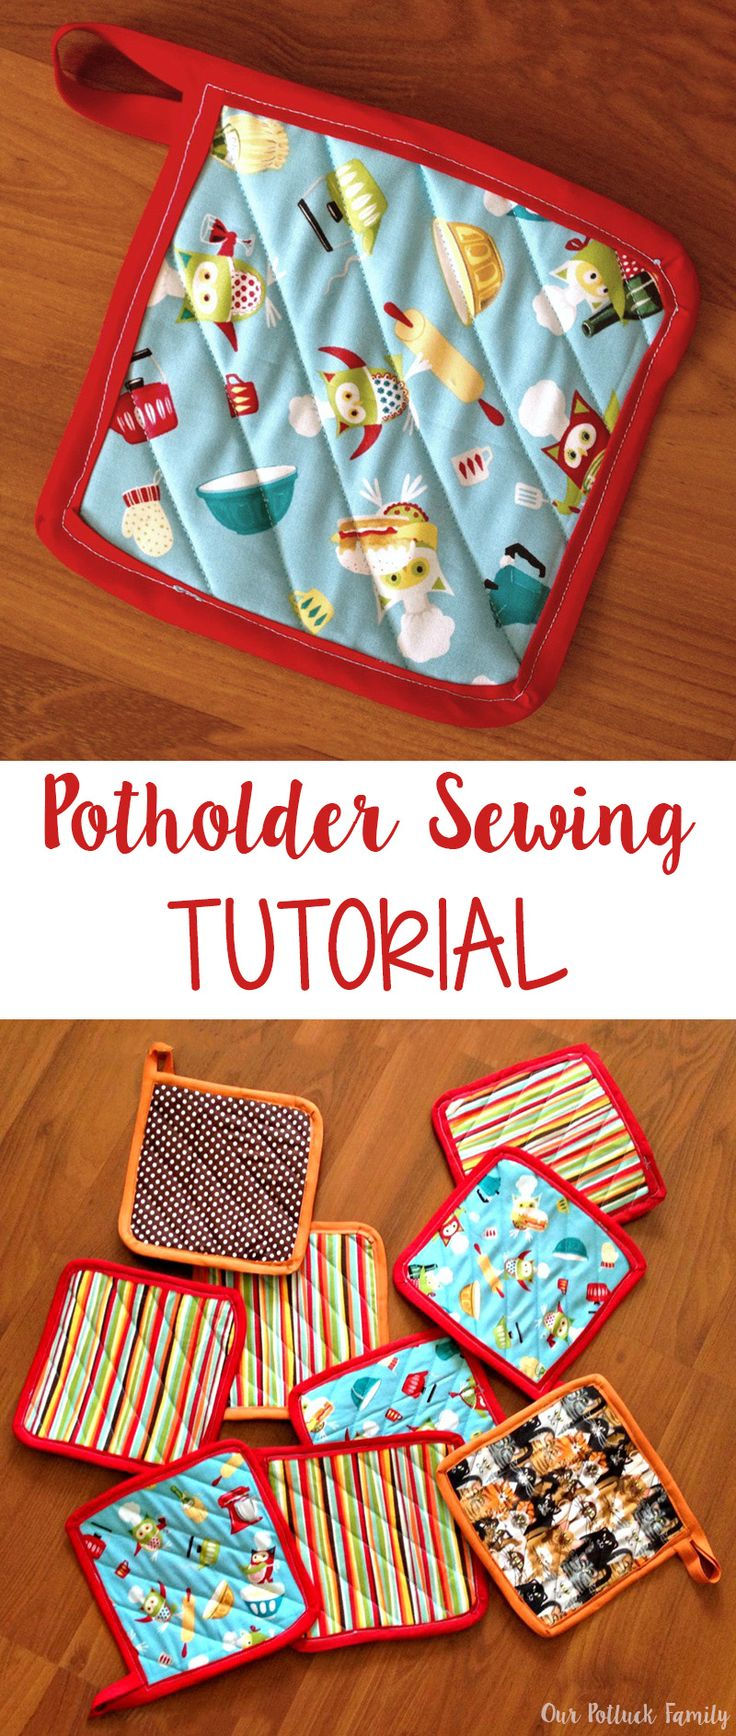 Step-by-step directions and images to sew a simple potholder.